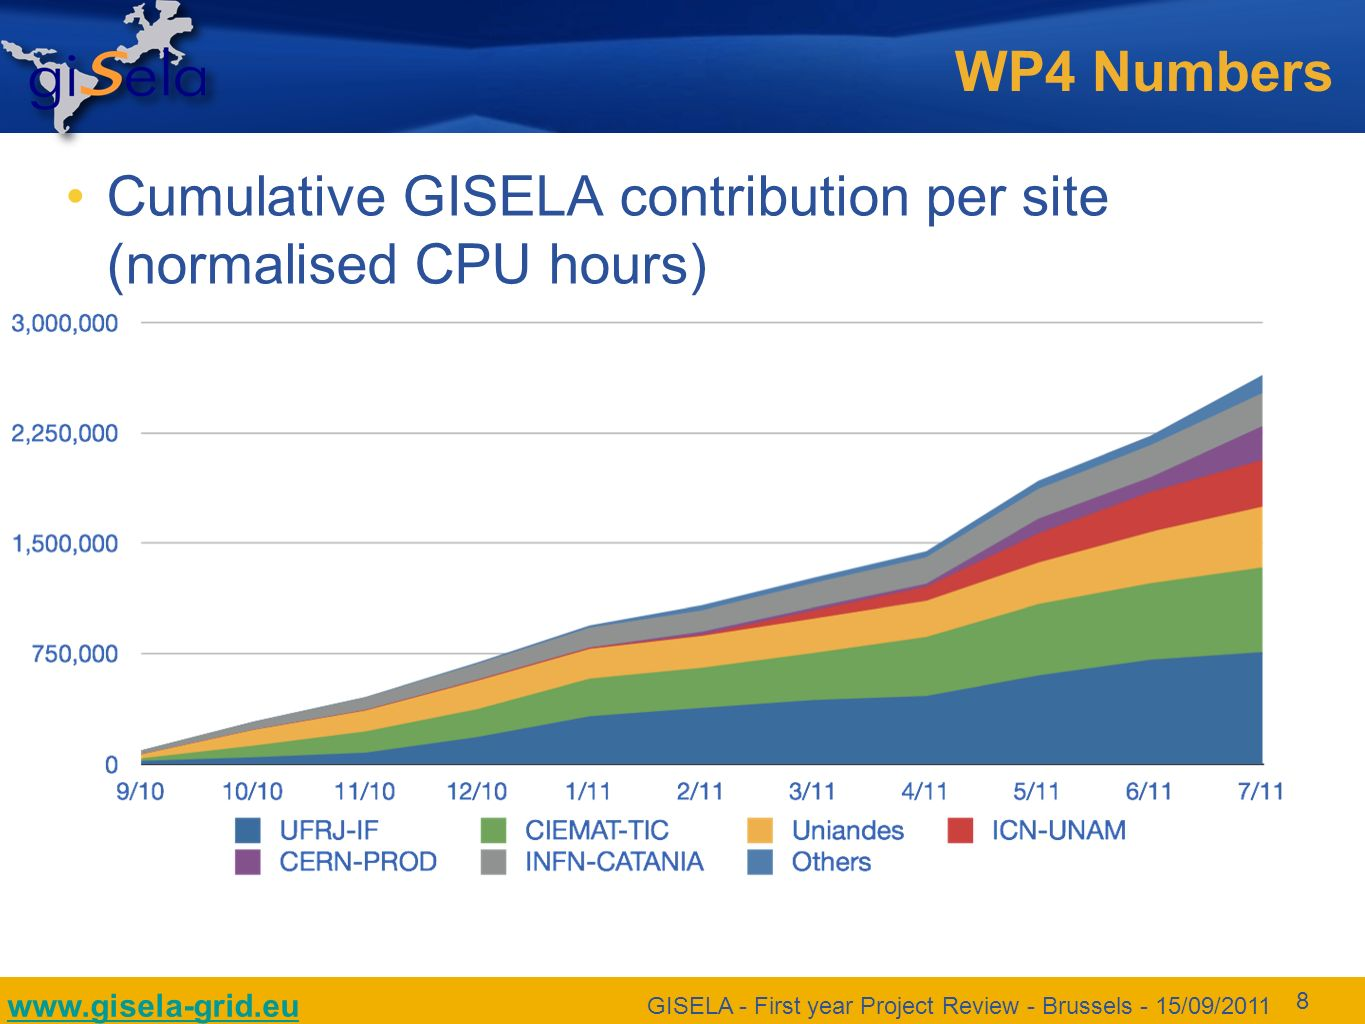 www.gisela-grid.eu GISELA - First year Project Review - Brussels - 15/09/2011 8 WP4 Numbers Cumulative GISELA contribution per site (normalised CPU hours)